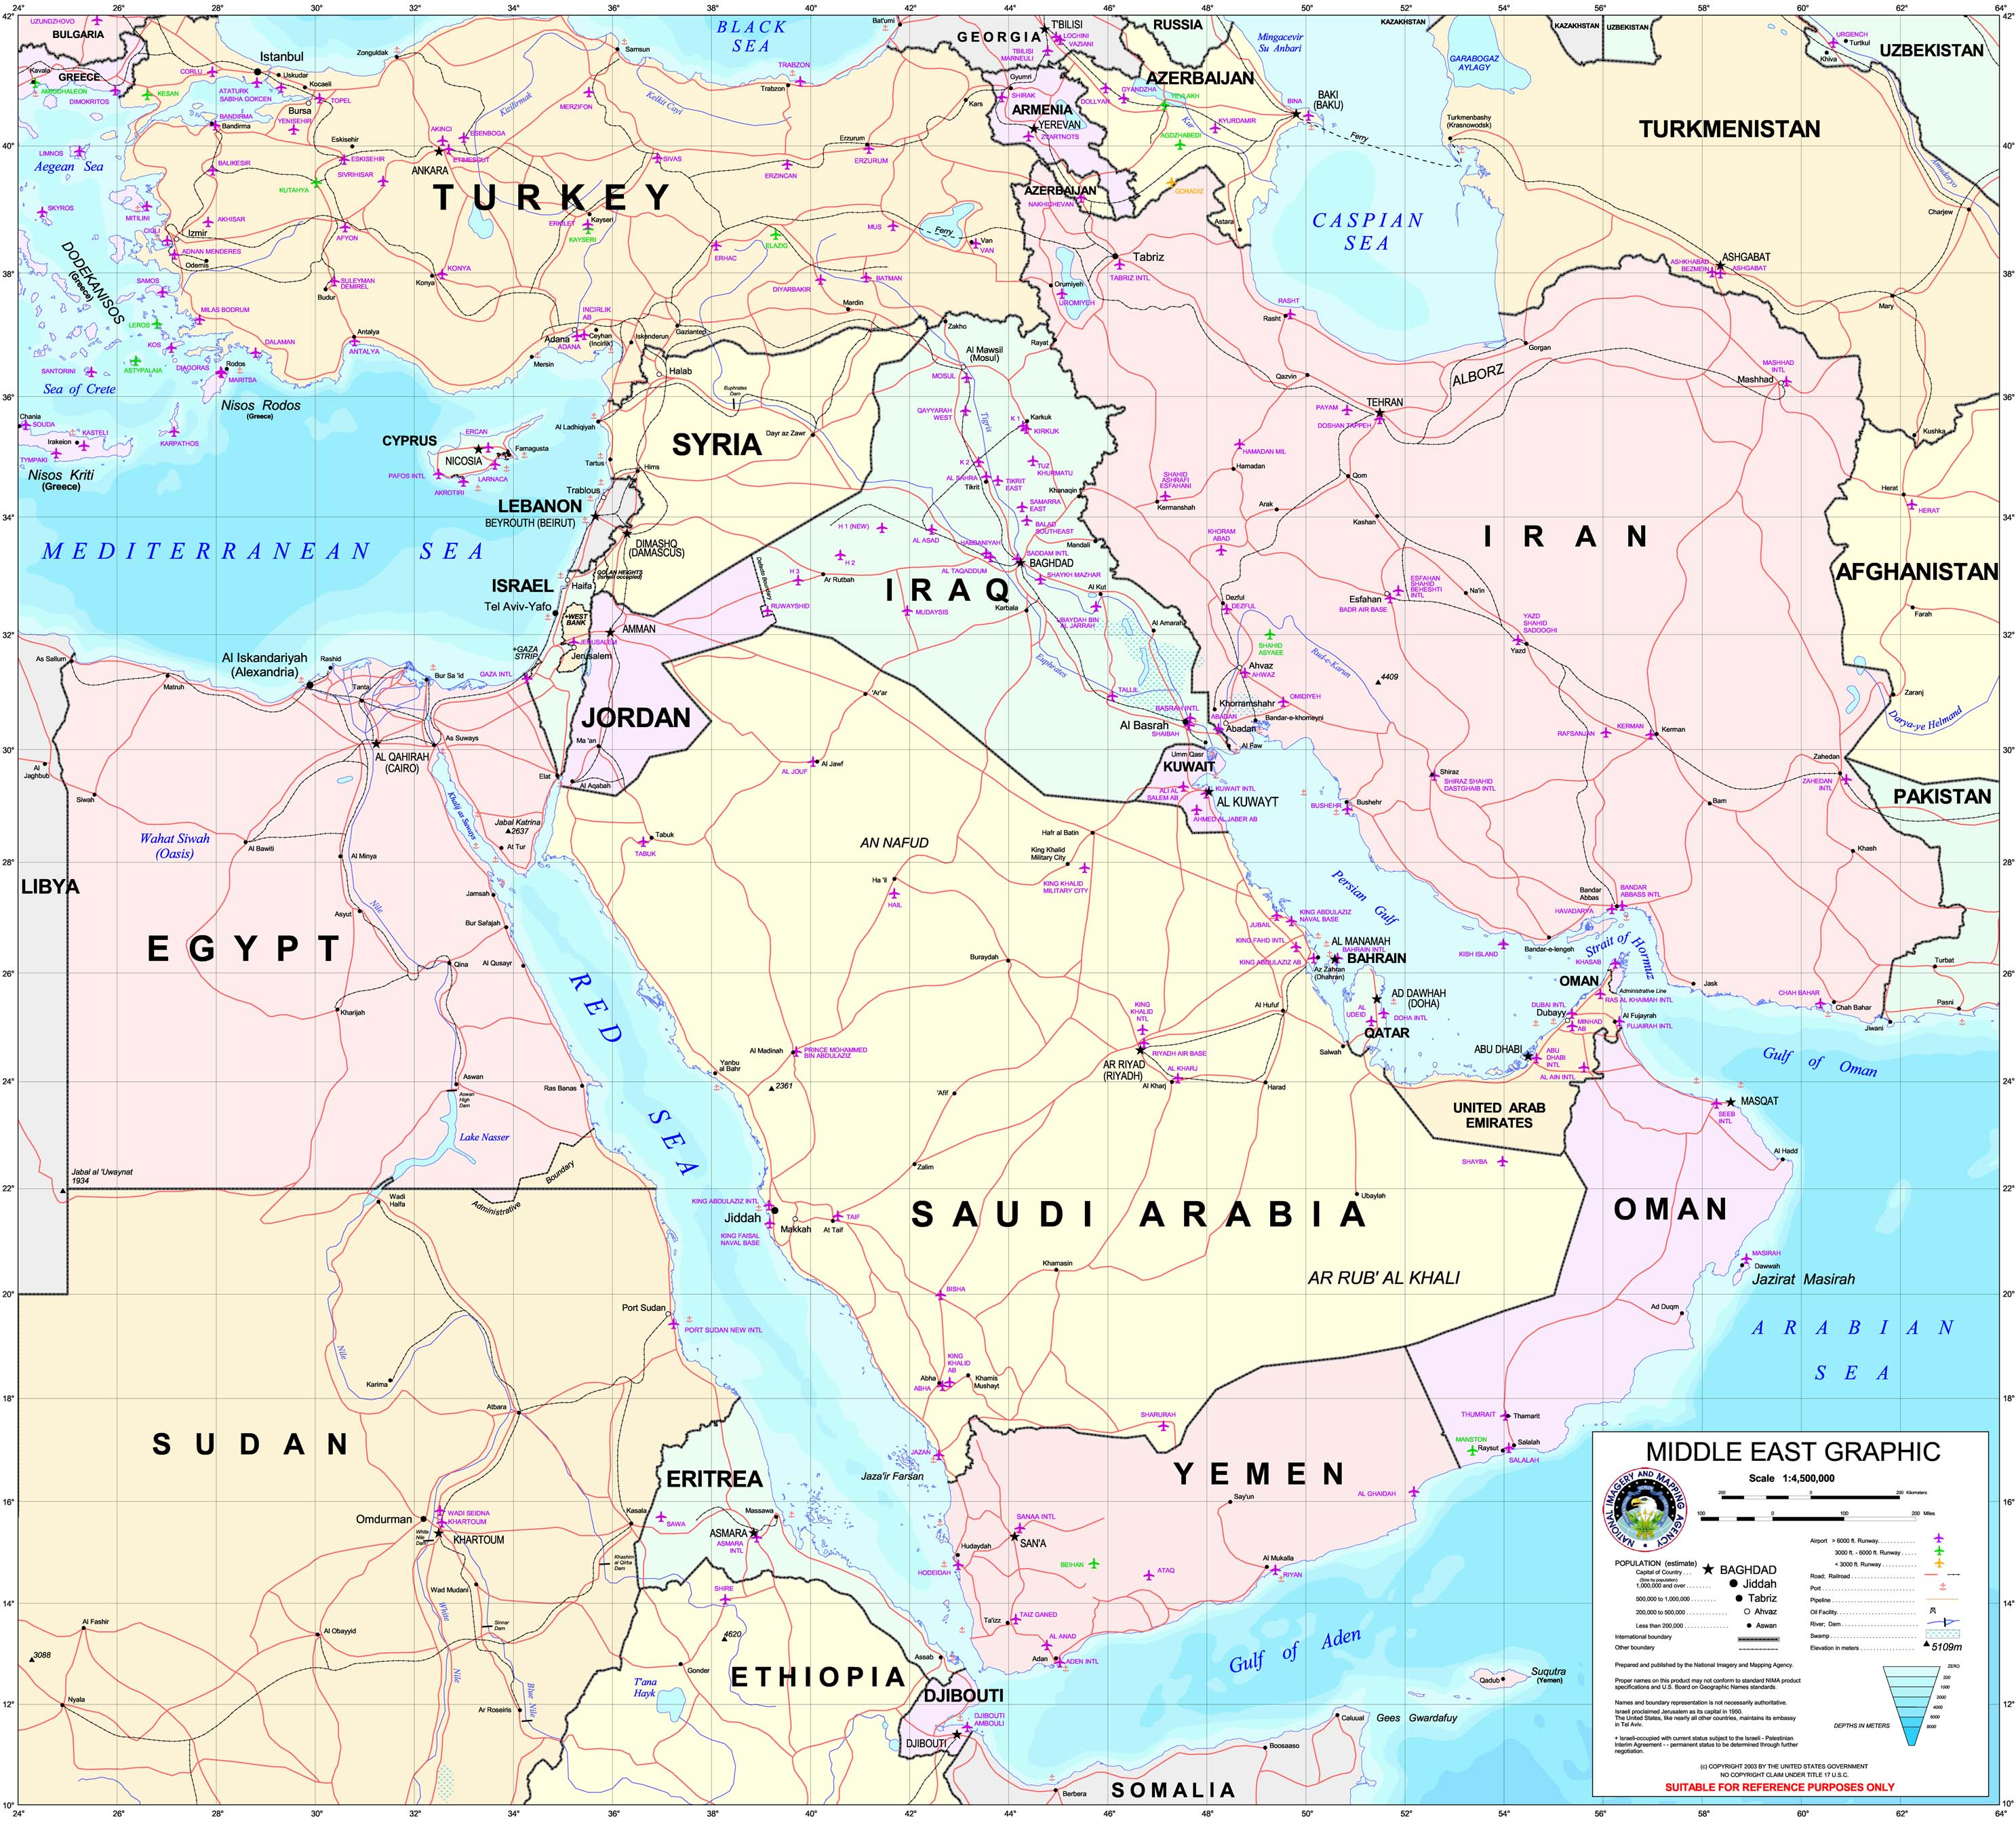 World Geography Mideast Region